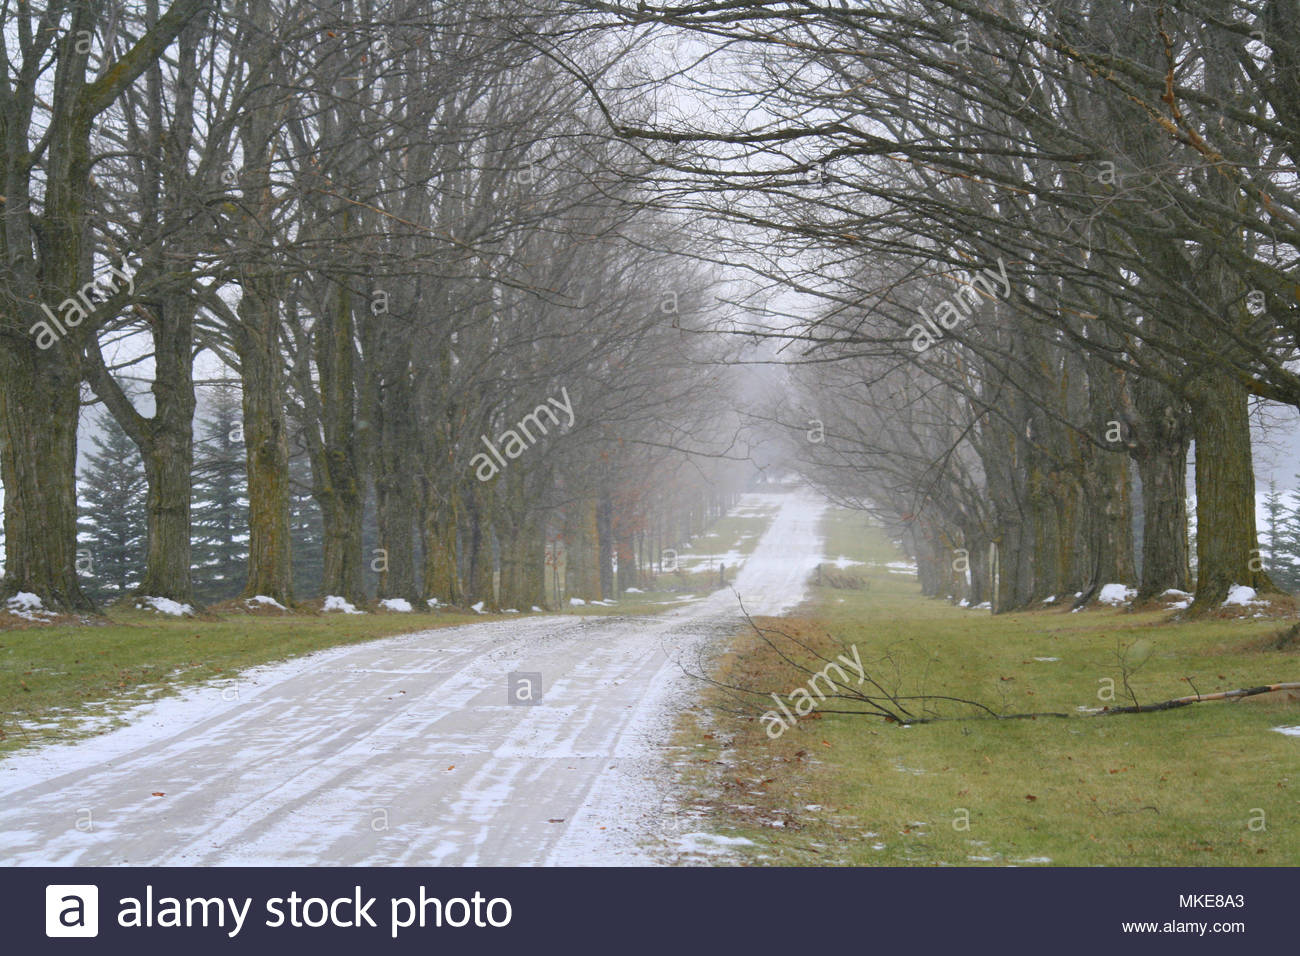 A scenic country road lightly dusted with snow. - Stock Image